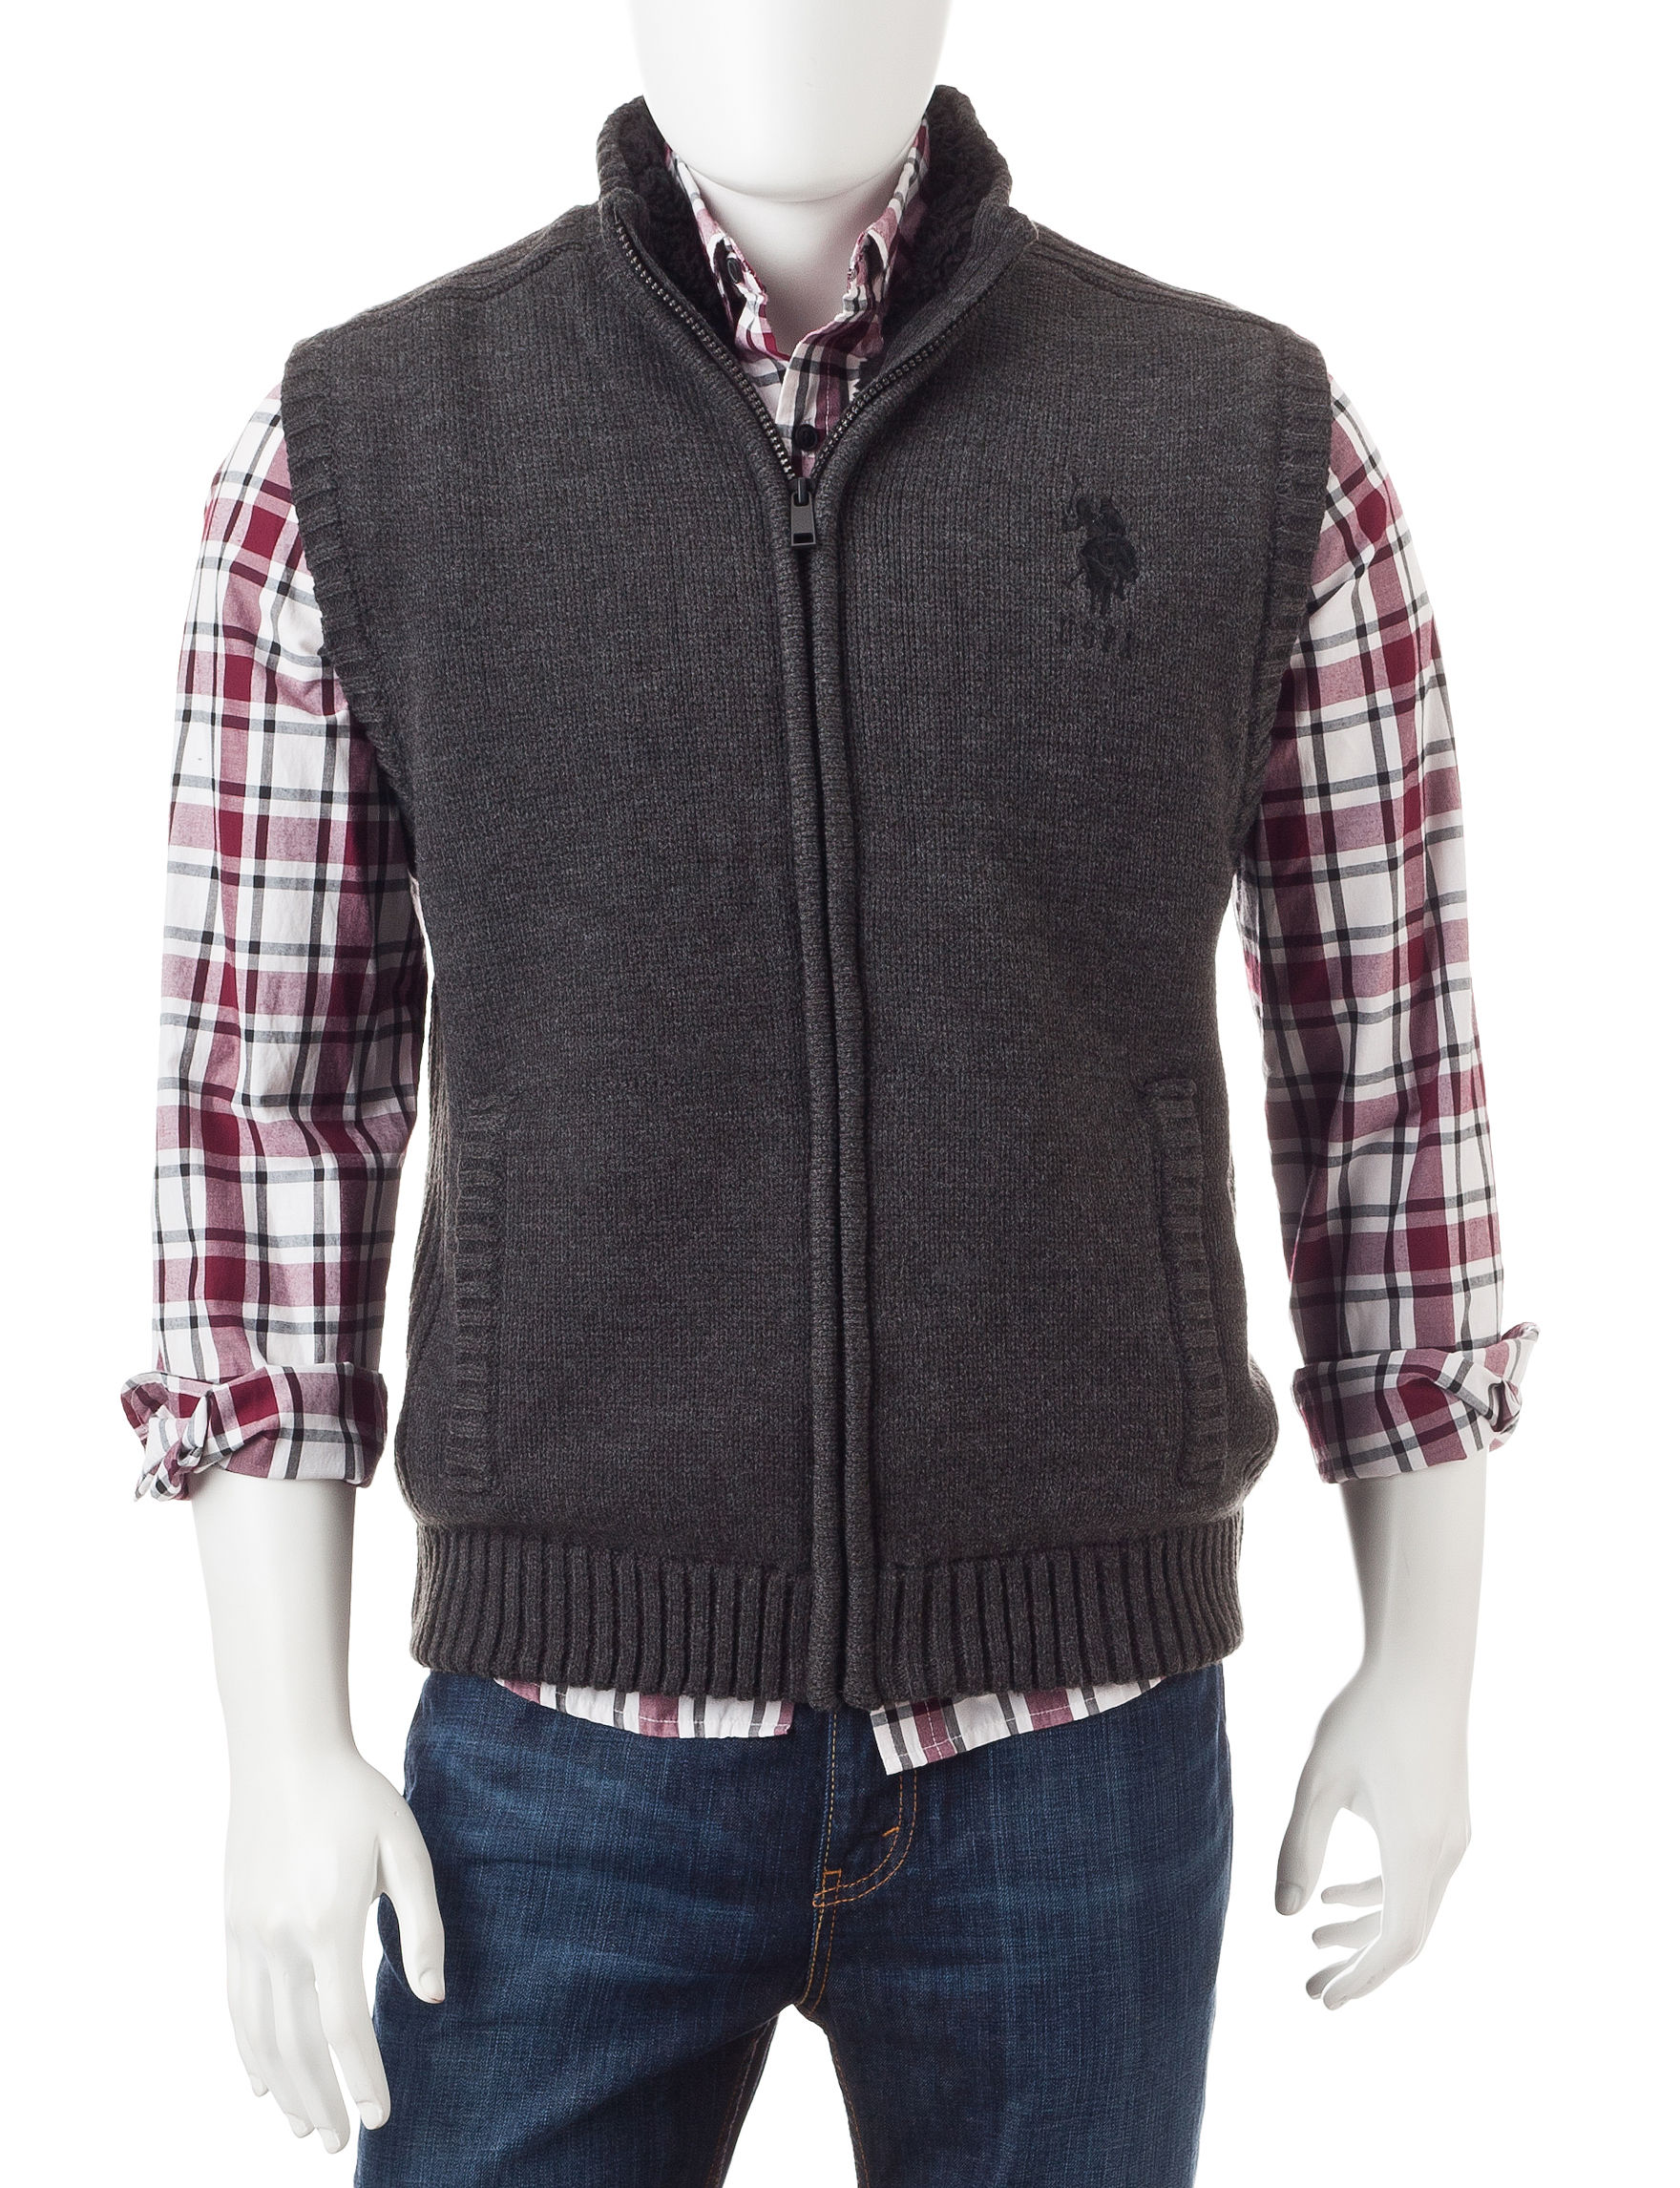 U.S. Polo Assn. Charcoal Vests